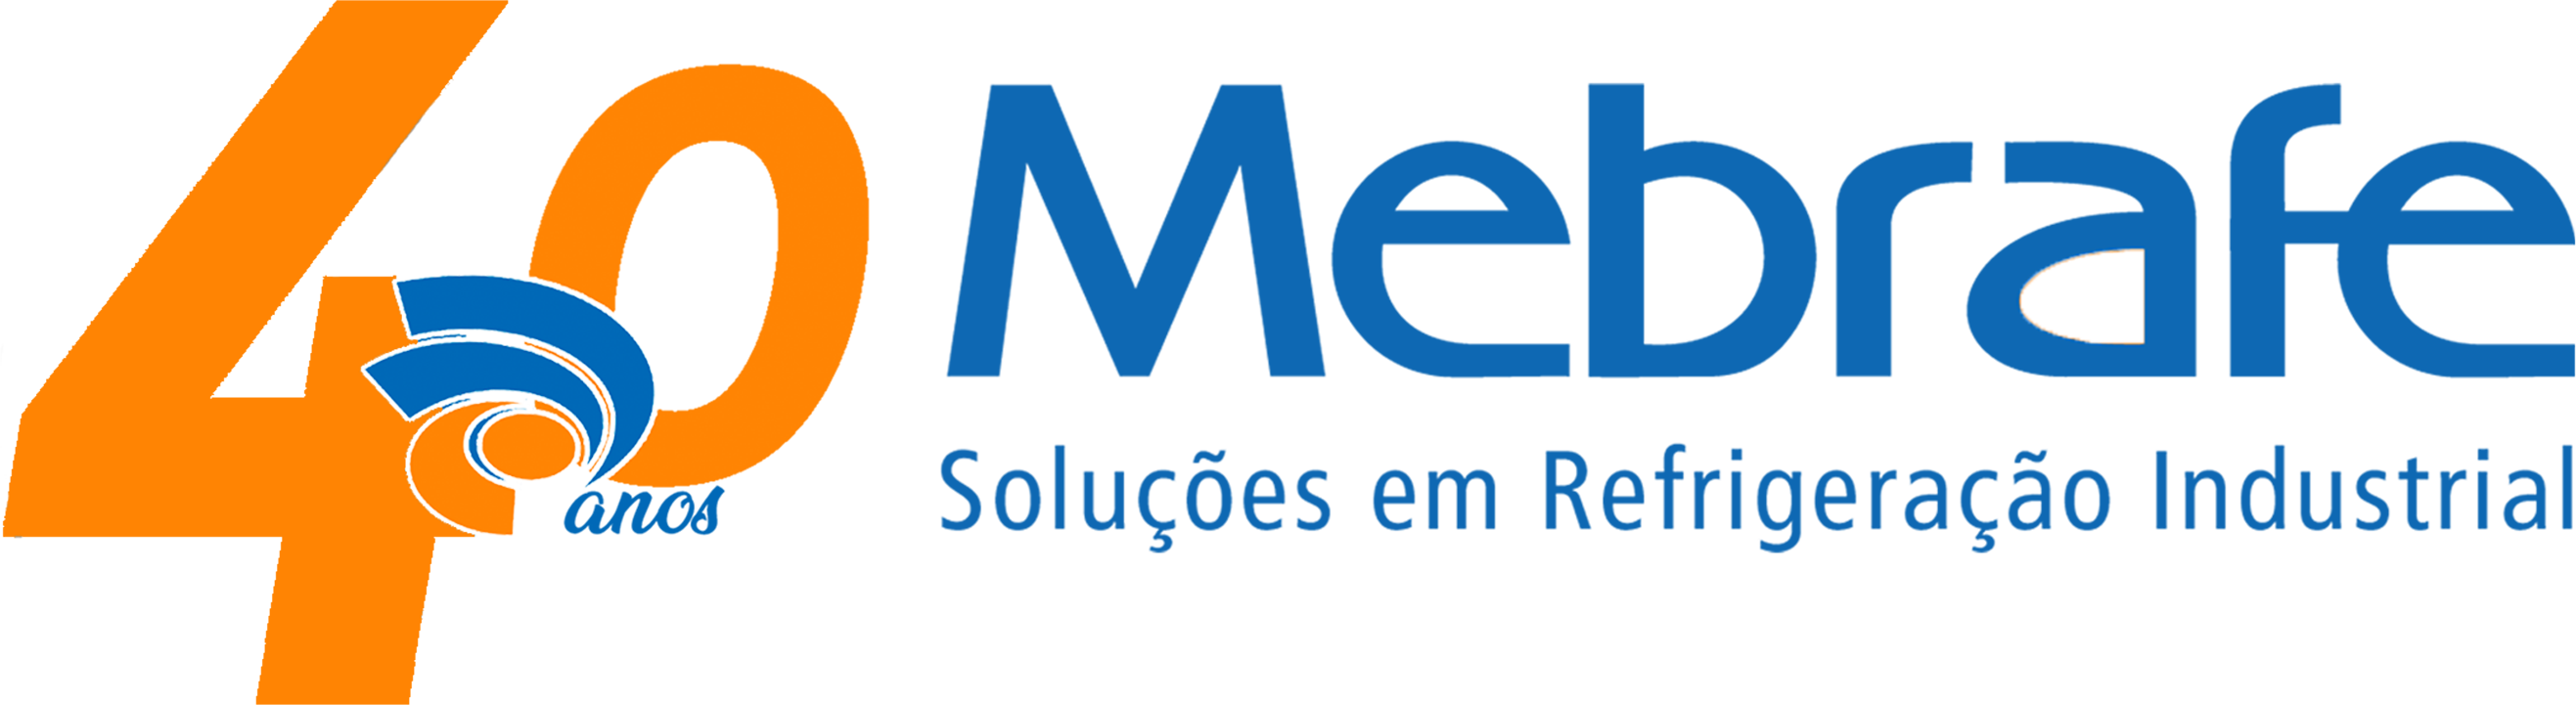 Logotipo Mebrafe